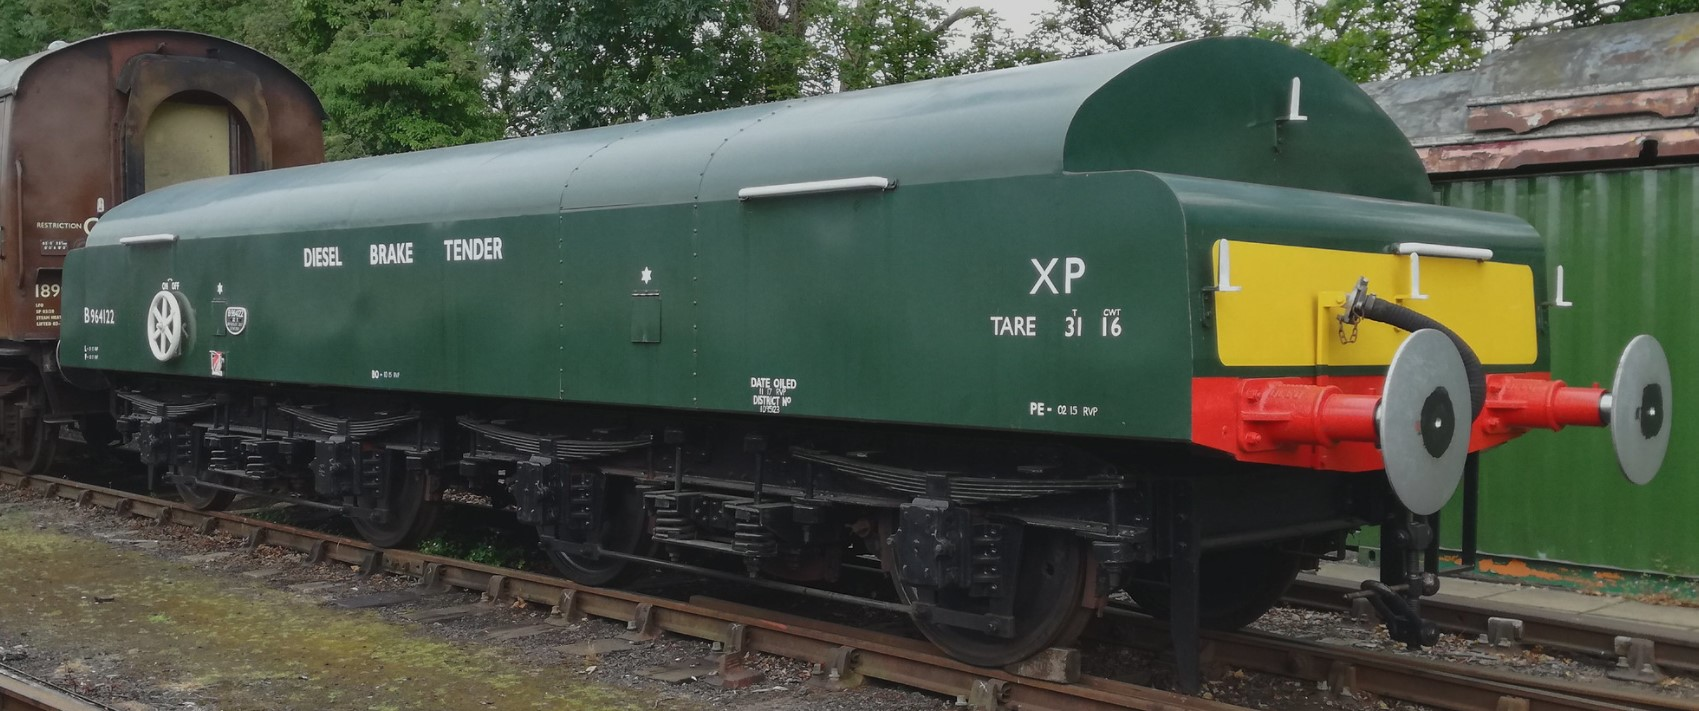 B964122 at Rothley in July 2019. ©Dave Bower